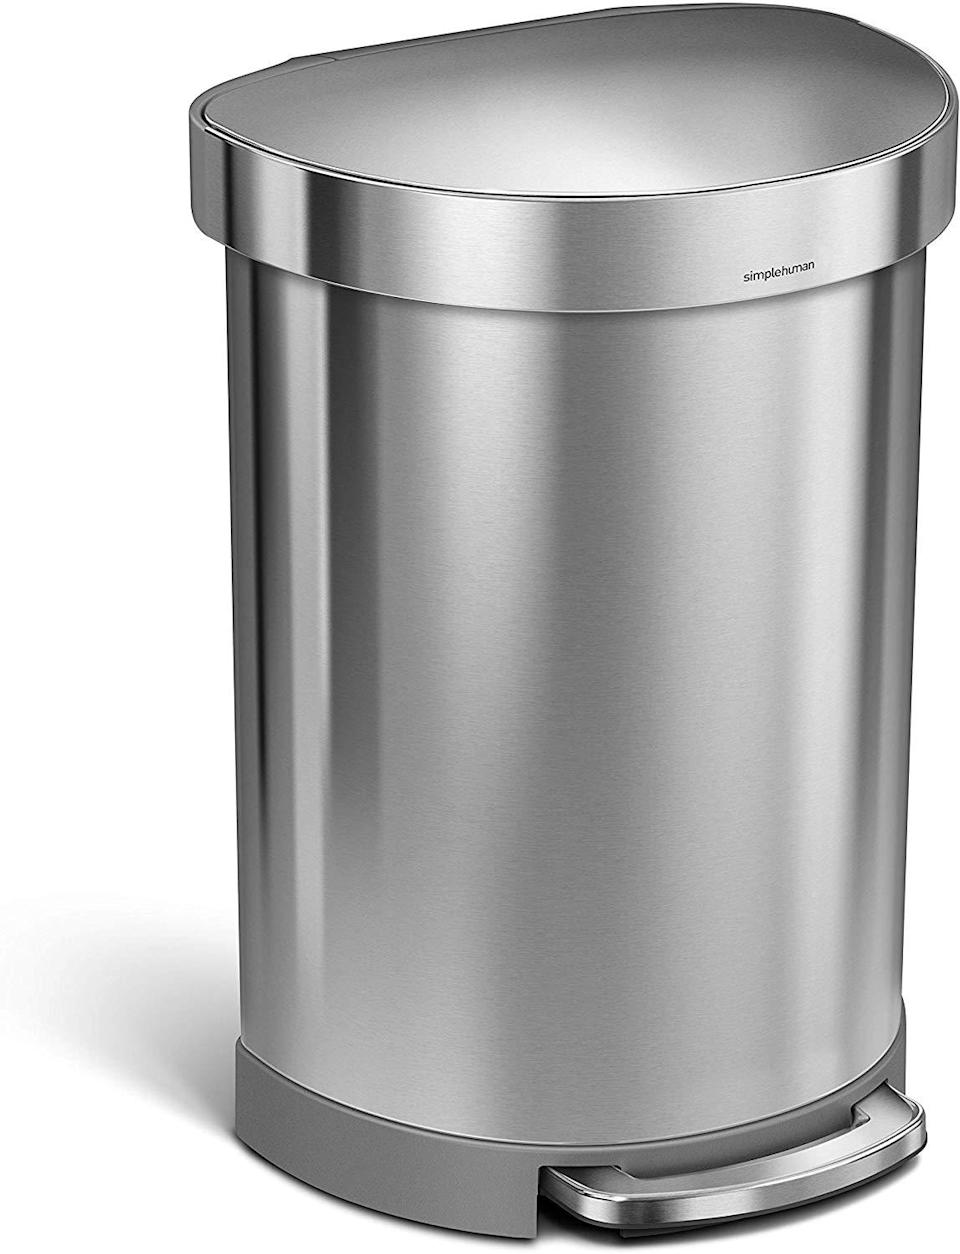 best kitchen trash cans simple human